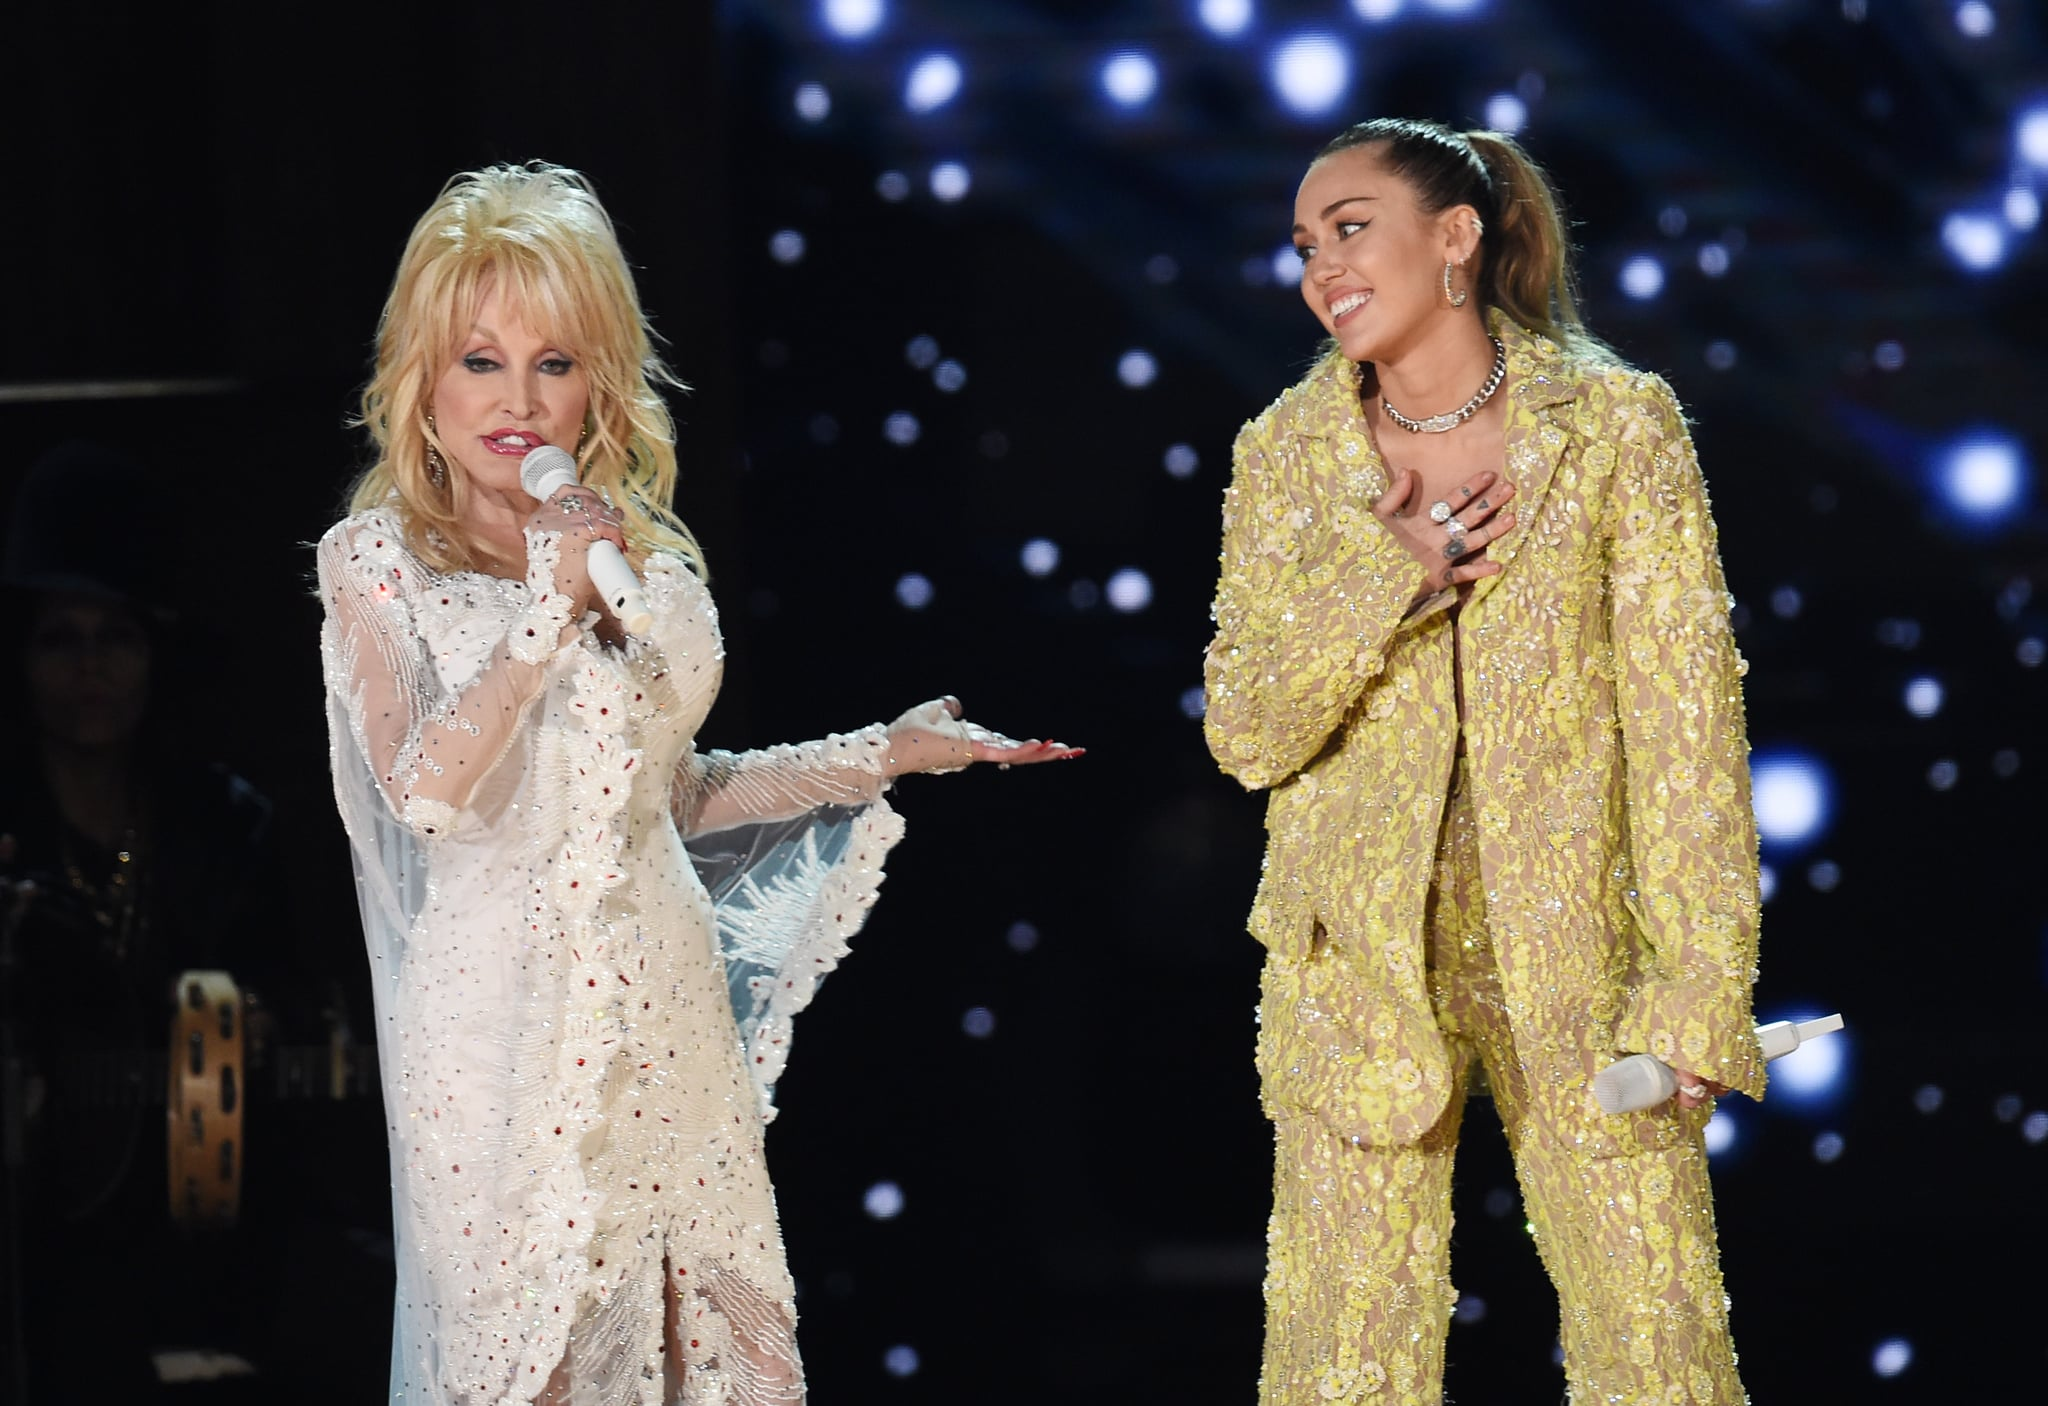 LOS ANGELES, CA - FEBRUARY 10:  Dolly Parton (L) and Miley Cyrus perform onstage during the 61st Annual GRAMMY Awards at Staples Center on February 10, 2019 in Los Angeles, California.  (Photo by Kevin Winter/Getty Images for The Recording Academy)